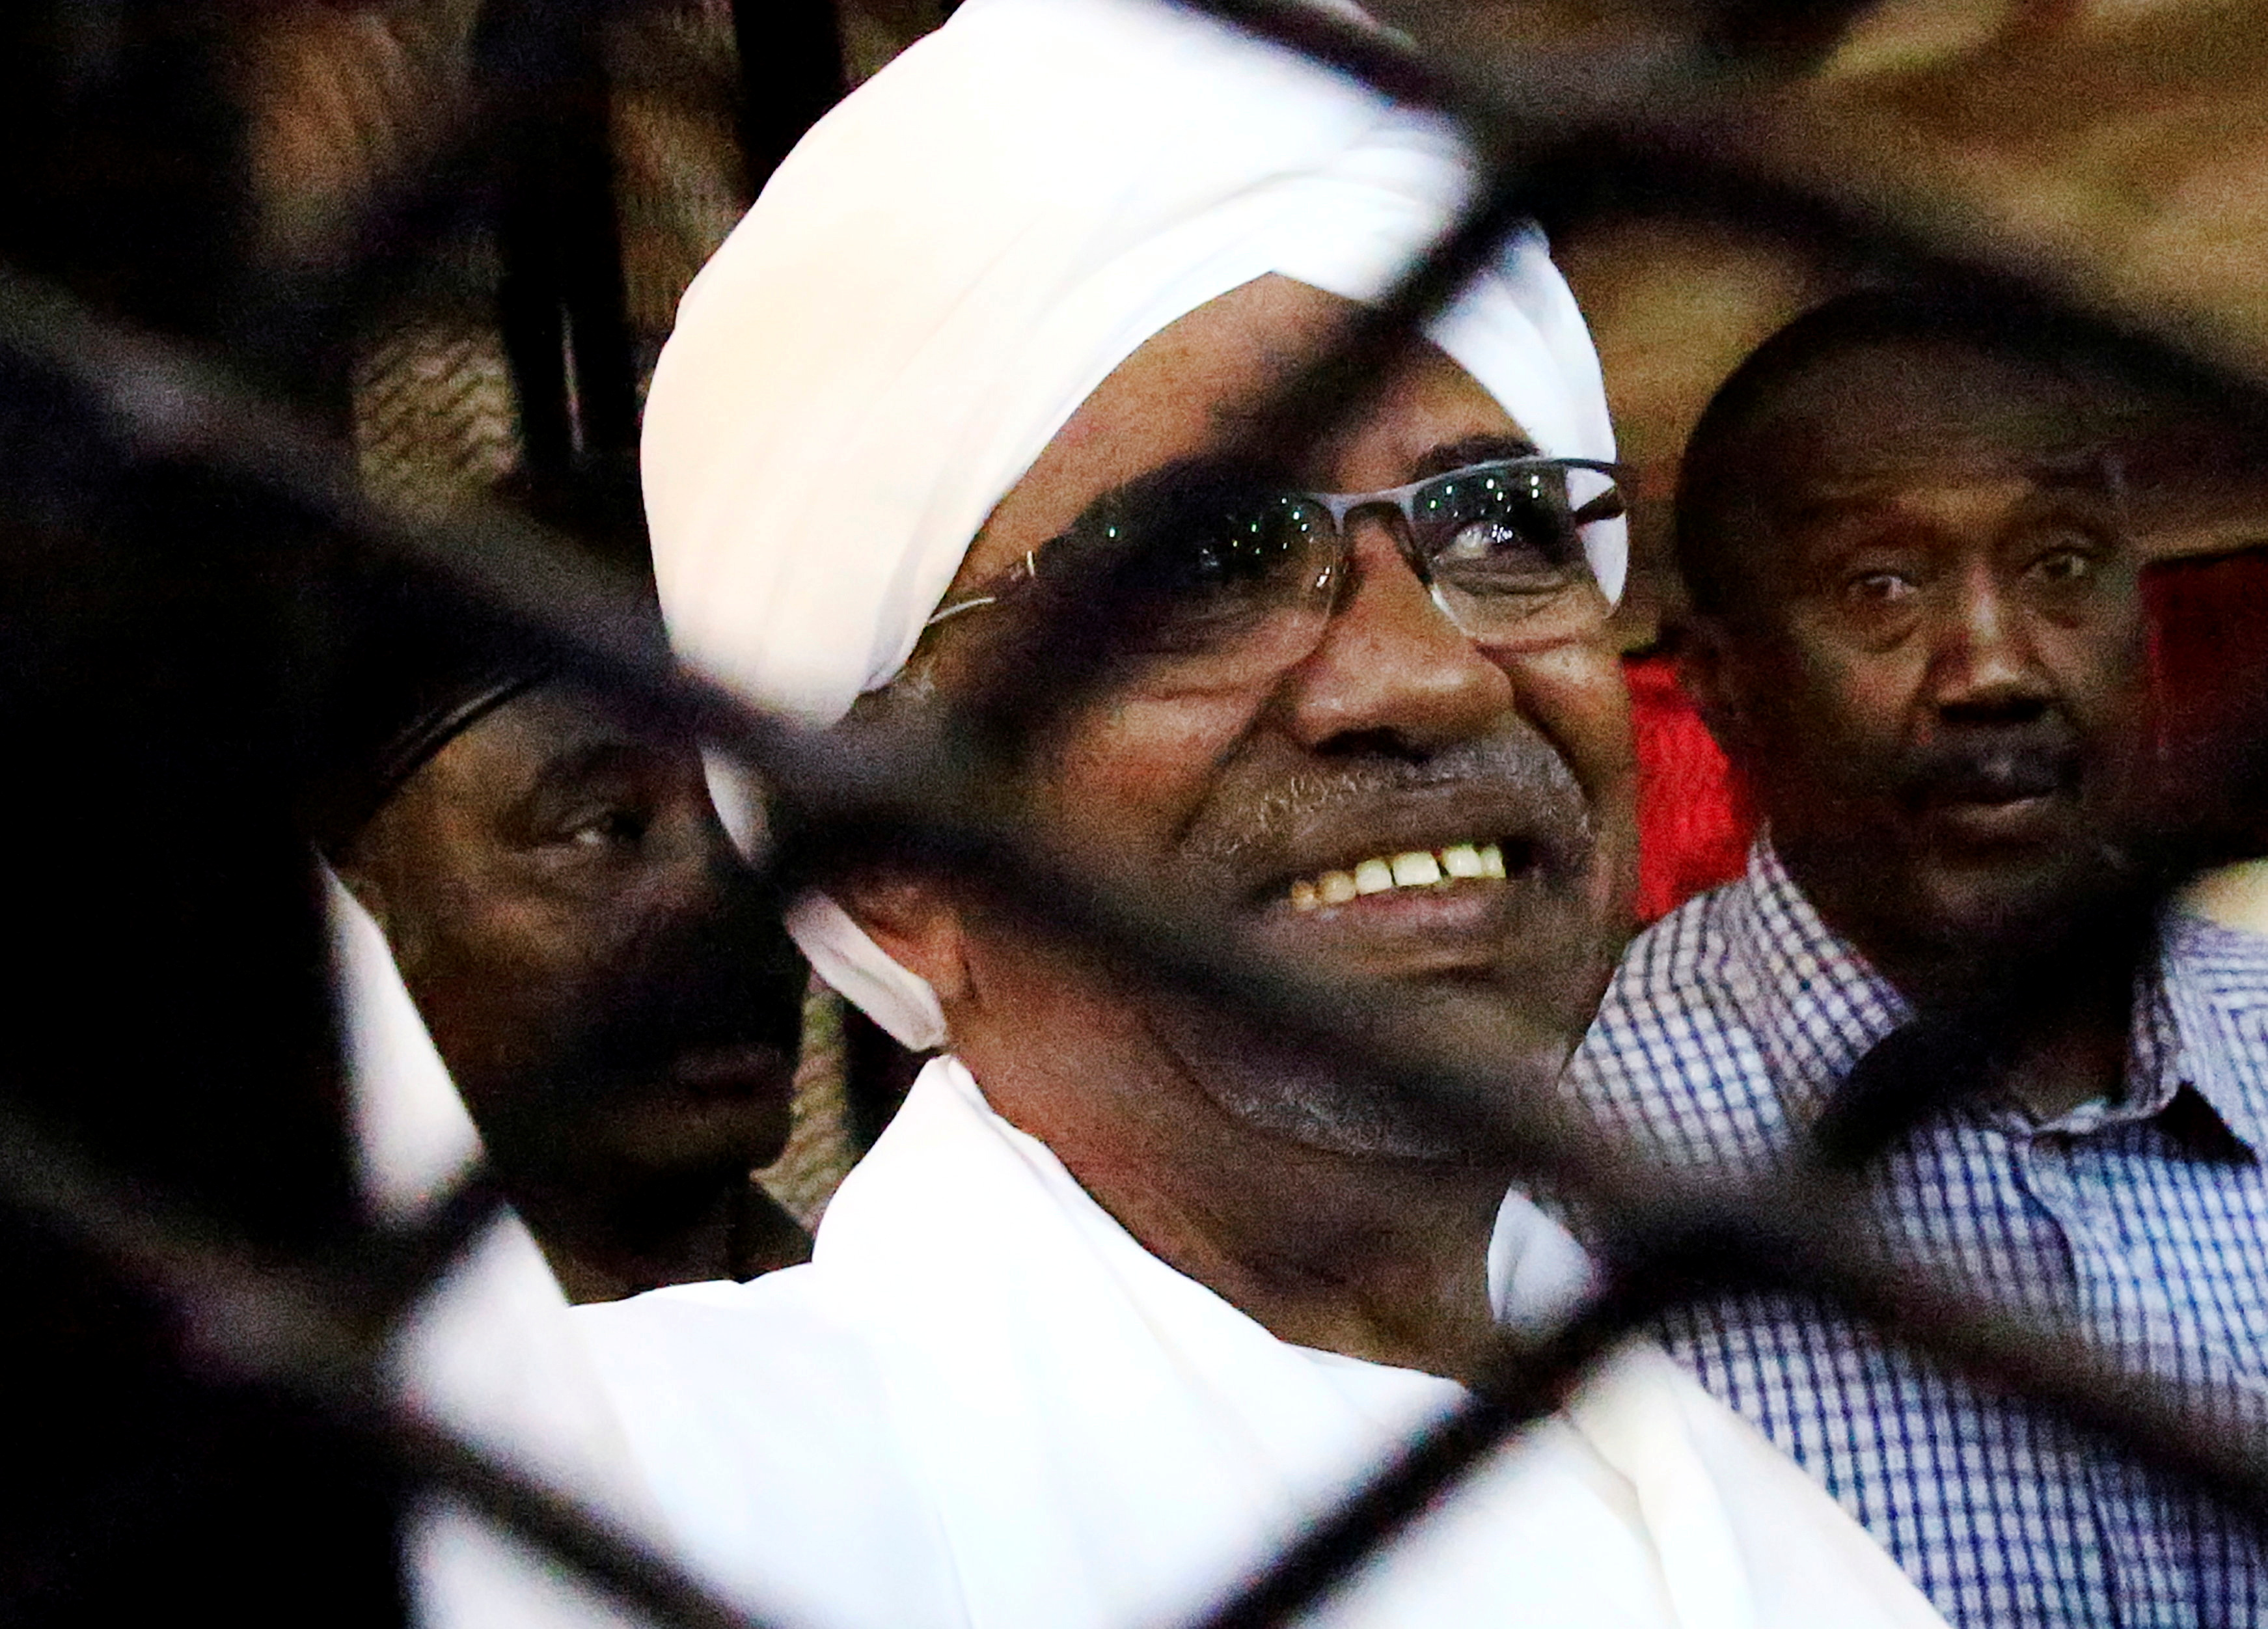 Sudan's former president Omar Hassan al-Bashir smiles as he is seen inside a cage at the courthouse where he is facing corruption charges, in Khartoum, Sudan August 31, 2019. REUTERS/Mohamed Nureldin Abdallah/File Photo